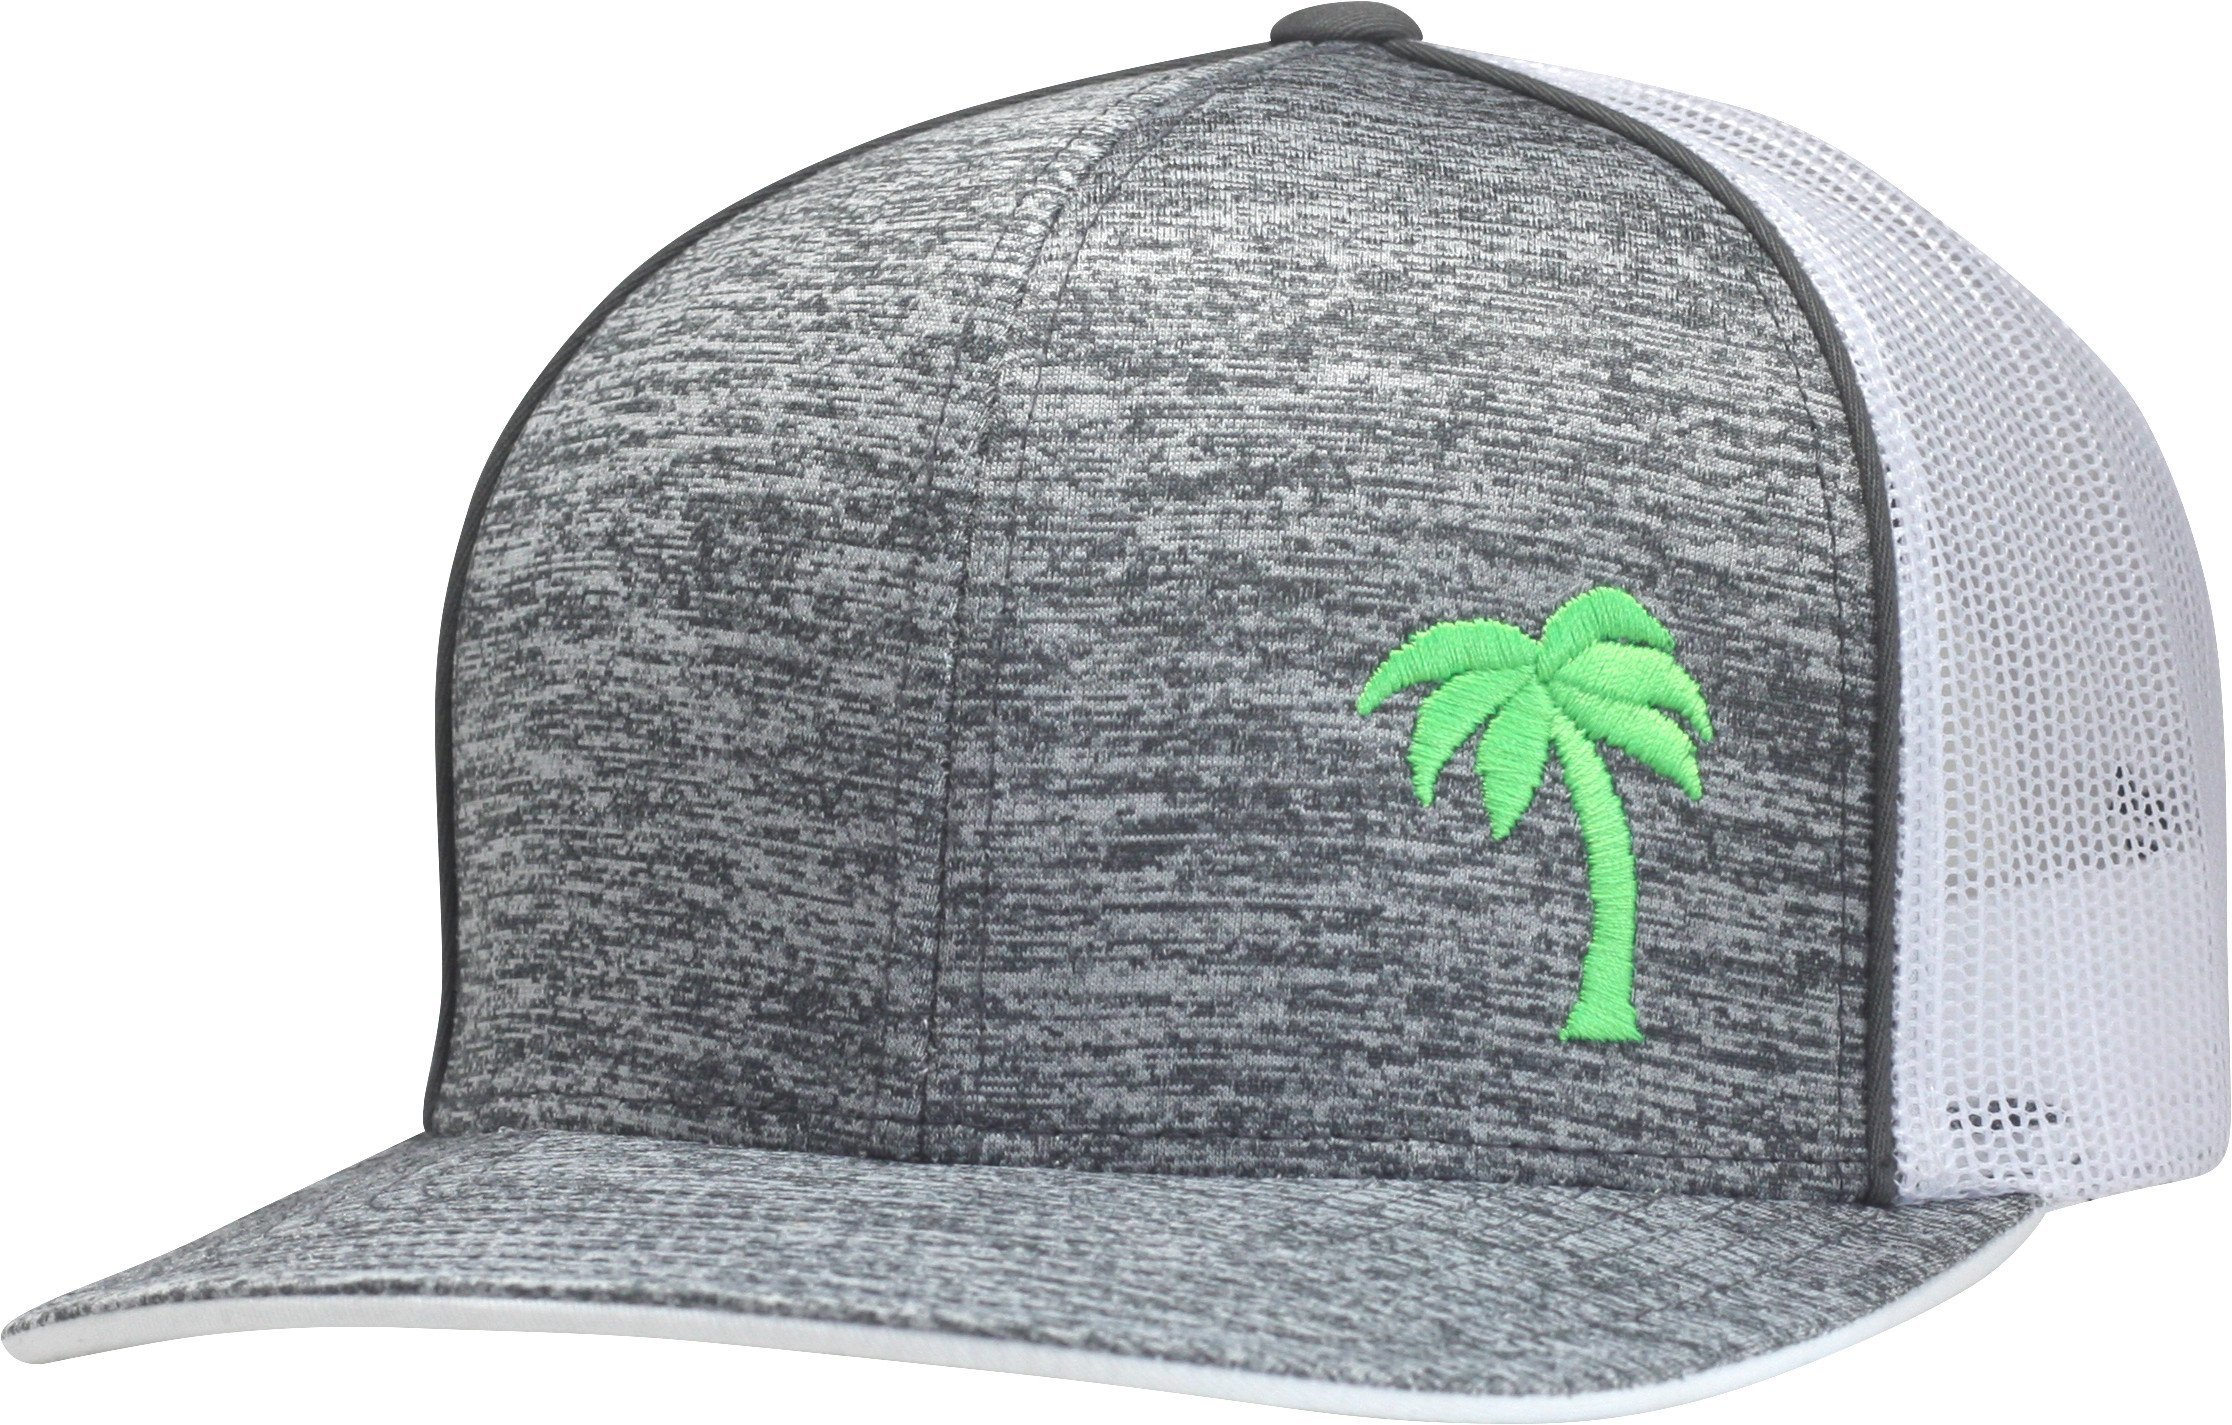 Lindo Trucker Hat - Palm Tree Series - by (Static Gray Neon)  f6d2c2f9e8d